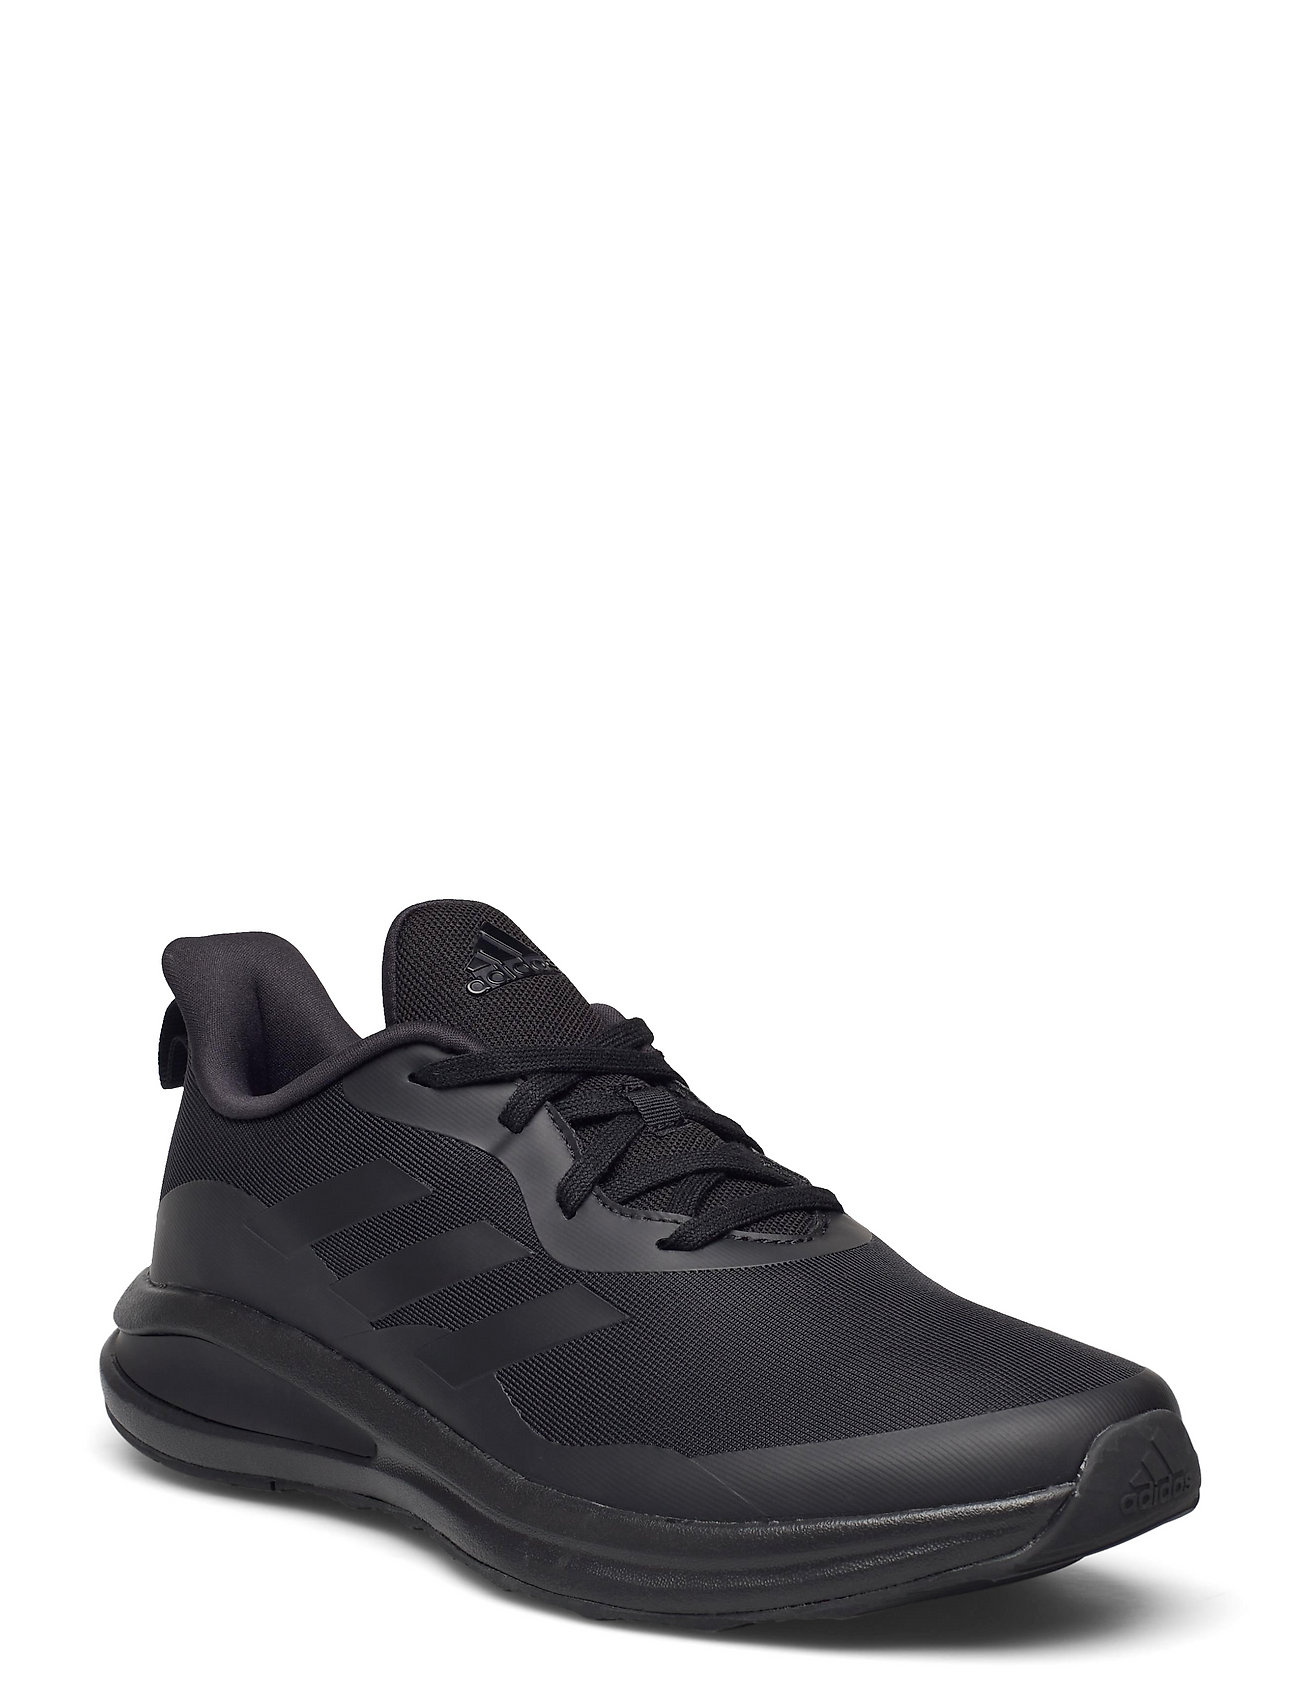 Fortarun Lace Running Shoes Sports Shoes Running/training Shoes Sort Adidas Performance